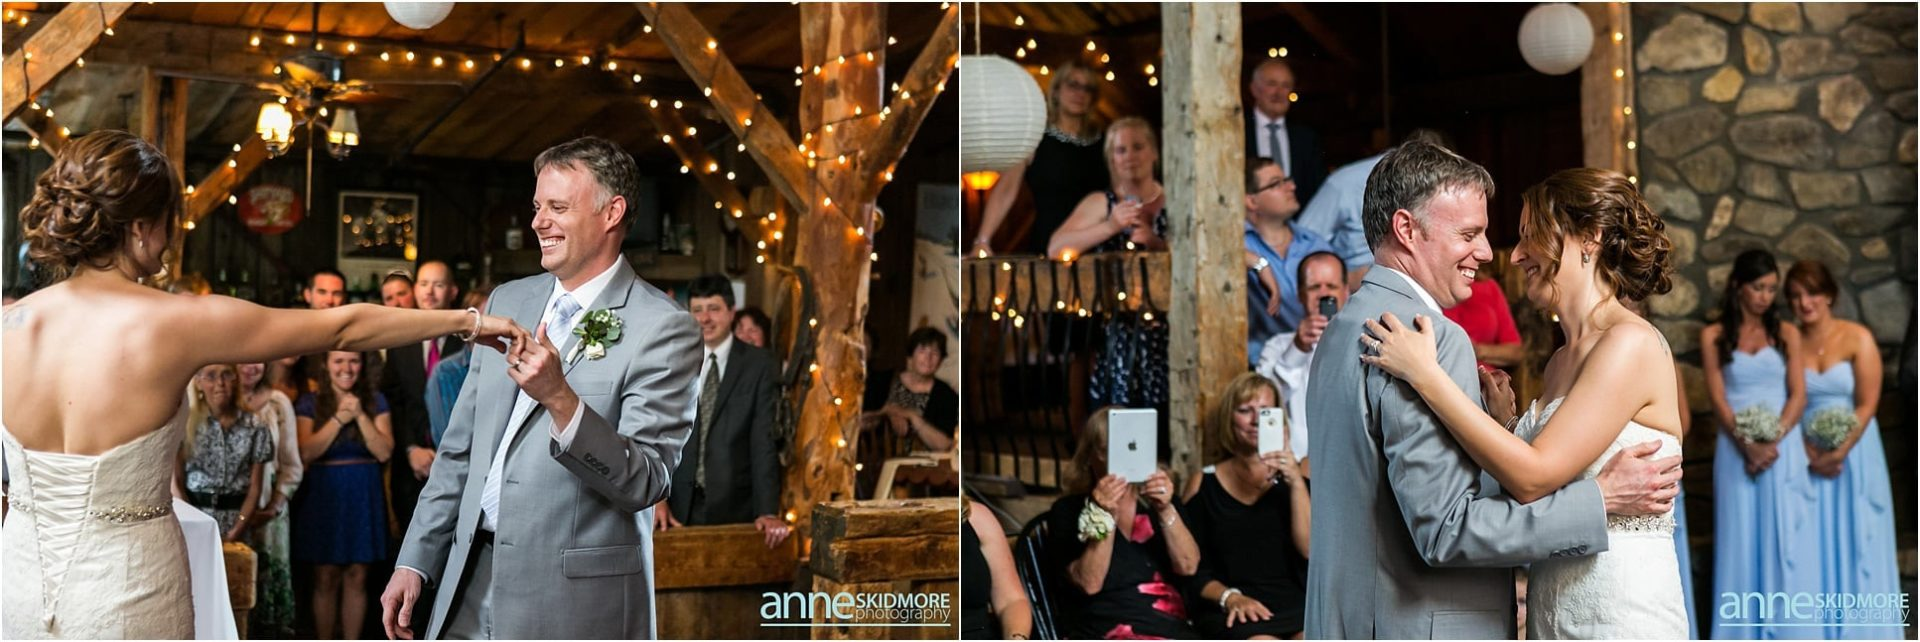 Whitneys_Inn_Wedding_0044